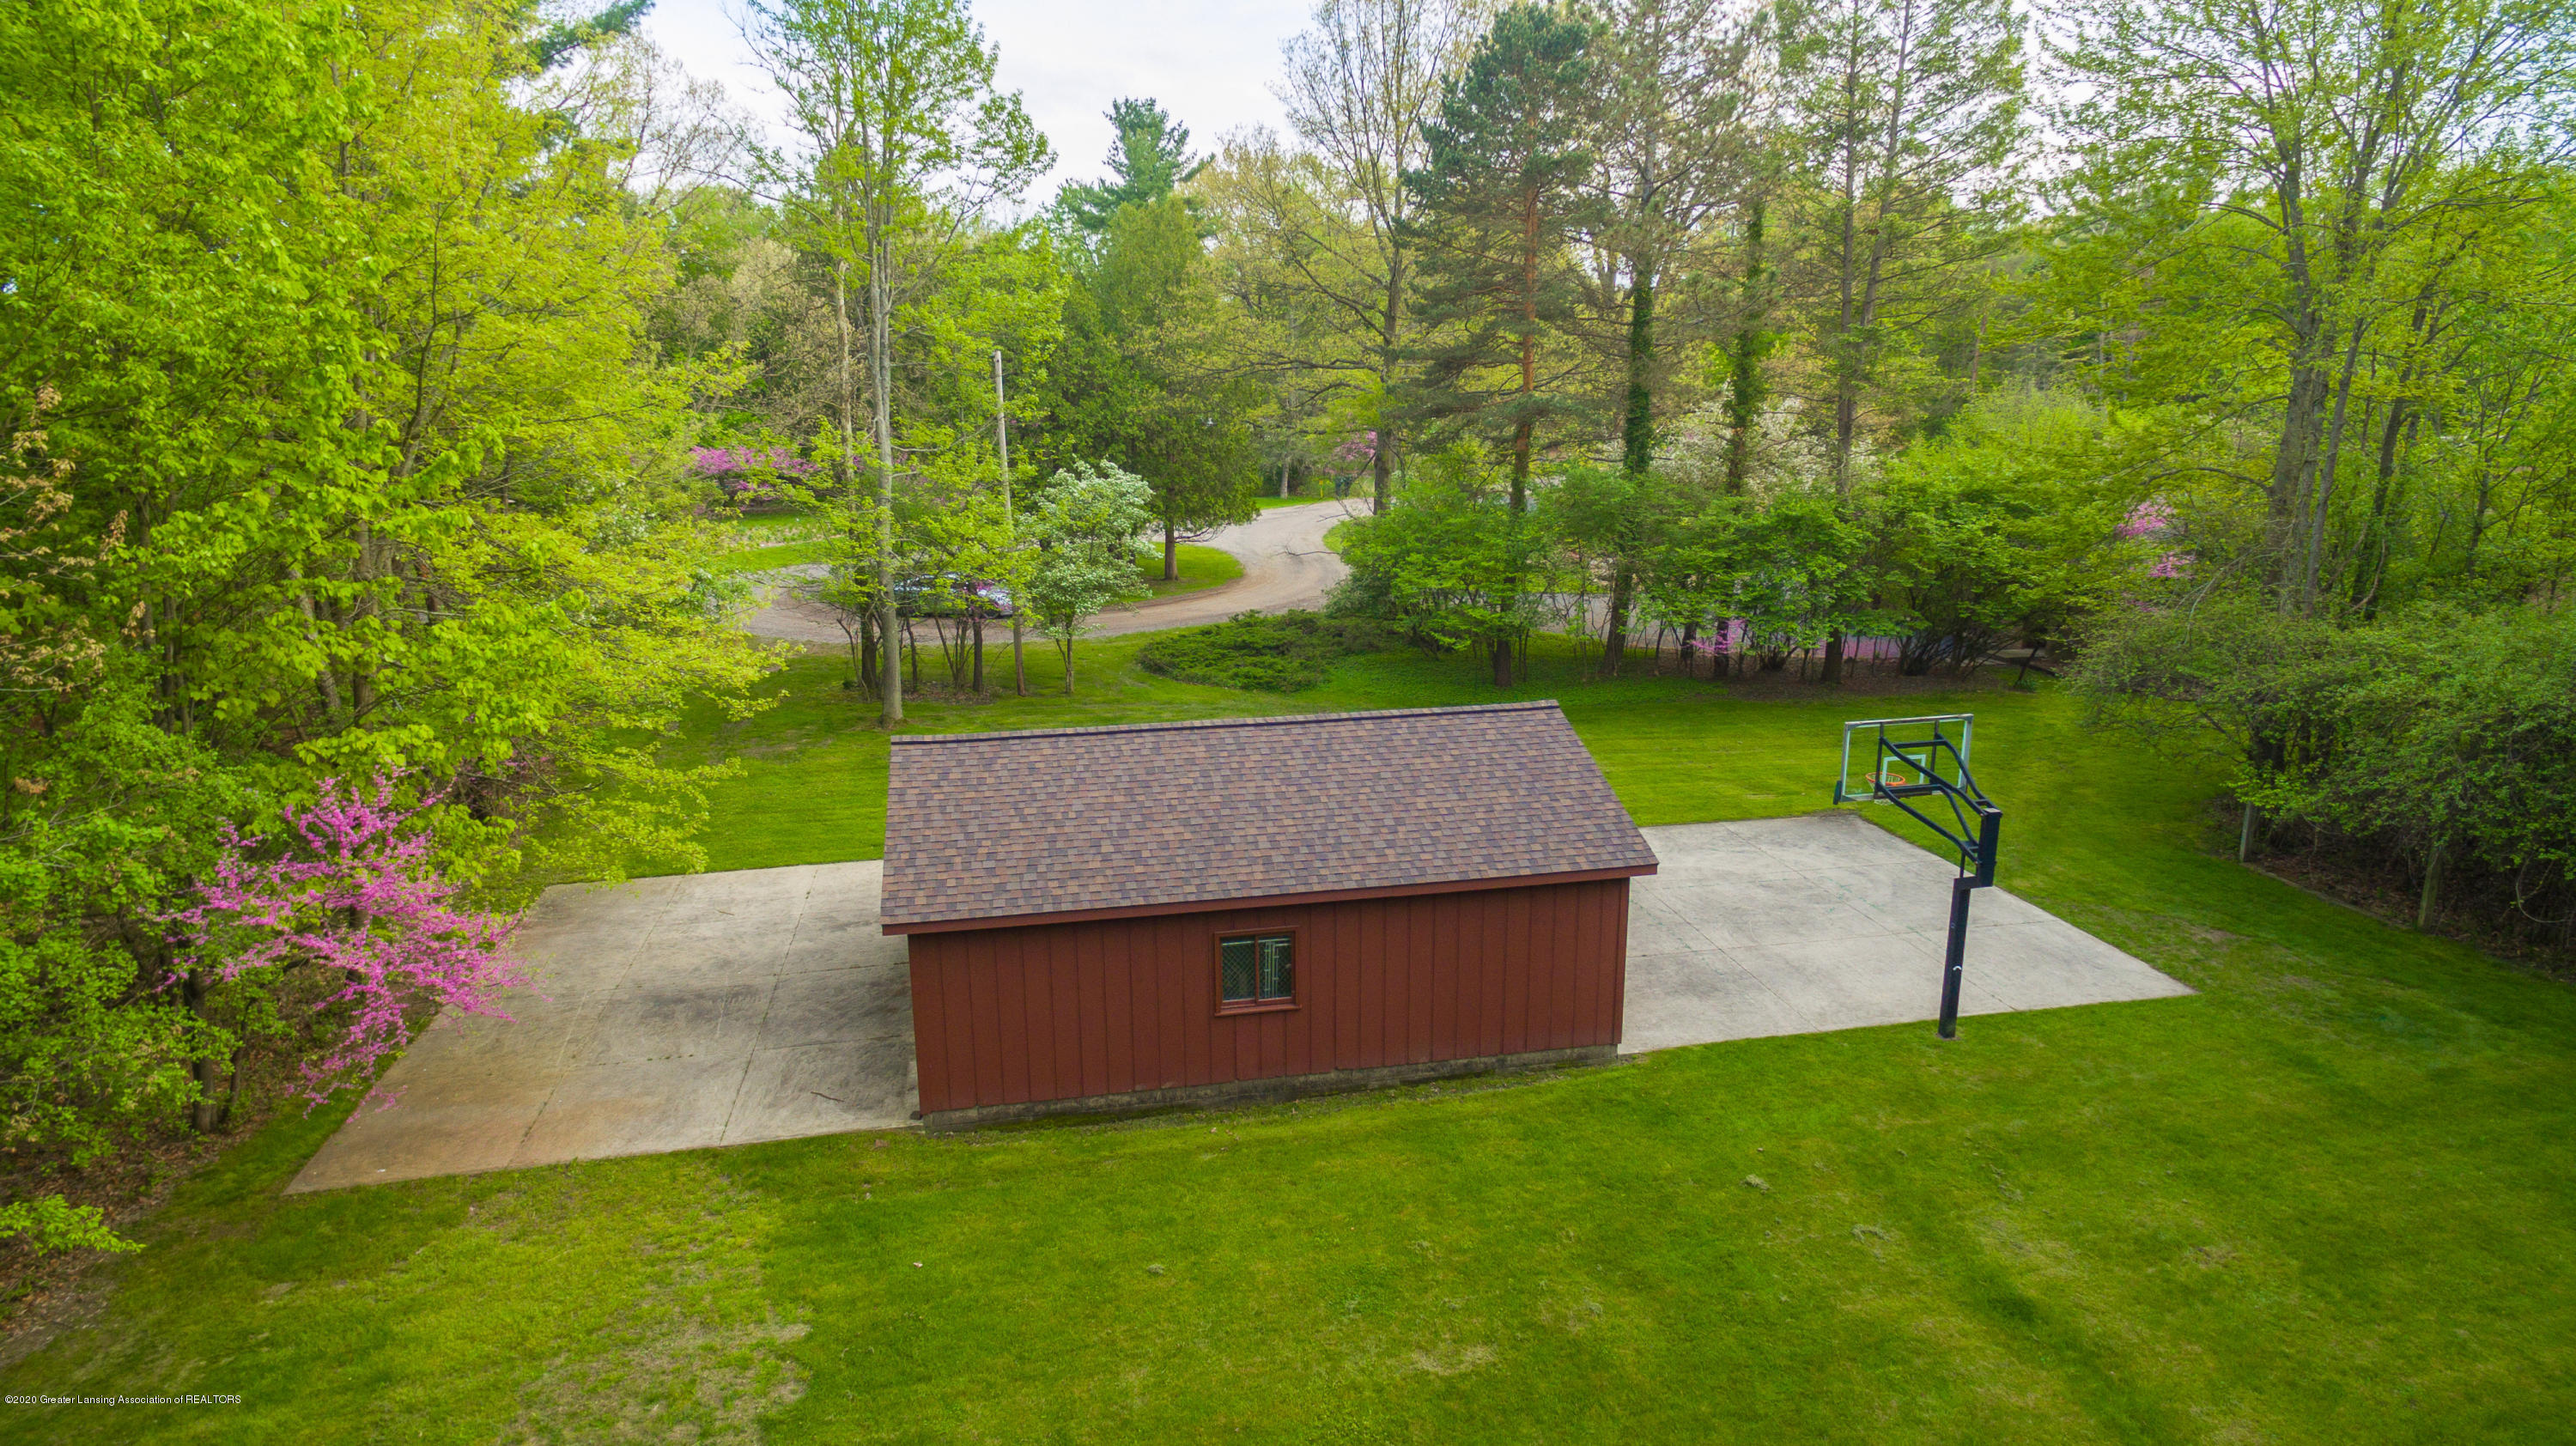 1172 Wrightwind Dr - Aerial View Shed - 81